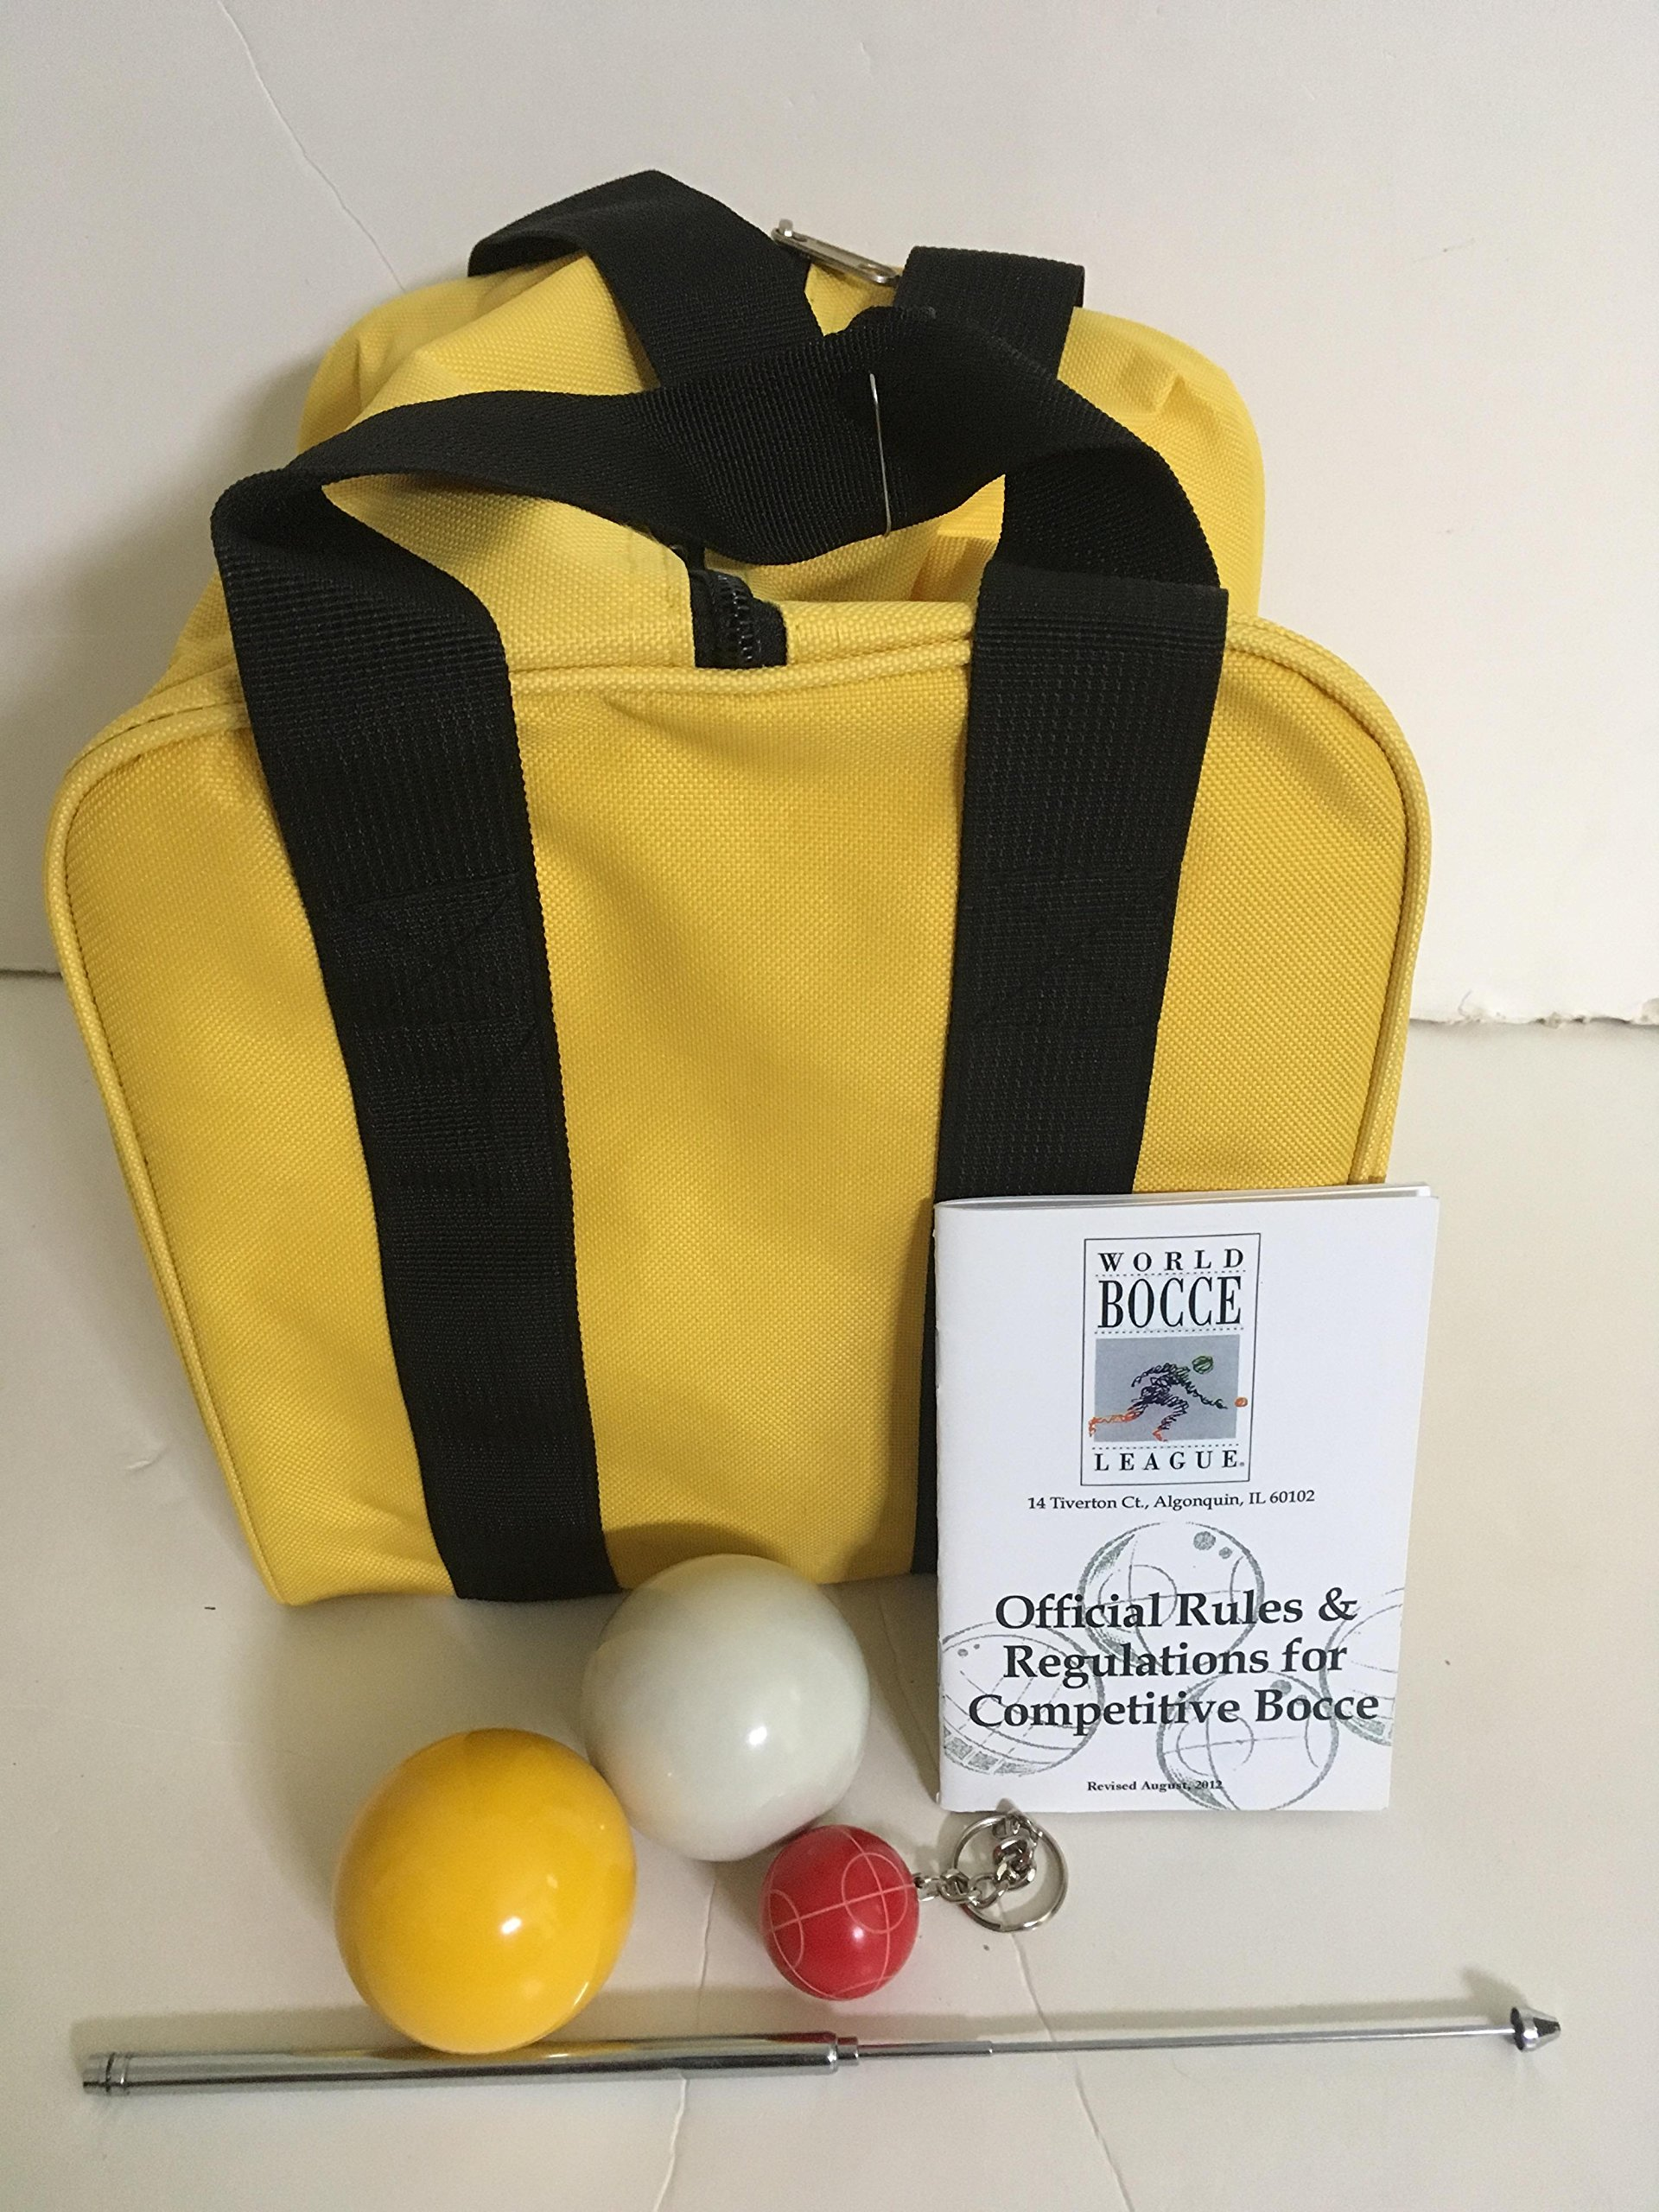 Unique Bocce Ball Accessories Package - Extra Heavy Duty Nylon Bocce Bag (Yellow with Black Handles), yellow and white pallinas, Extendable Measuring Device, Rule Book and Keychain by BuyBocceBalls